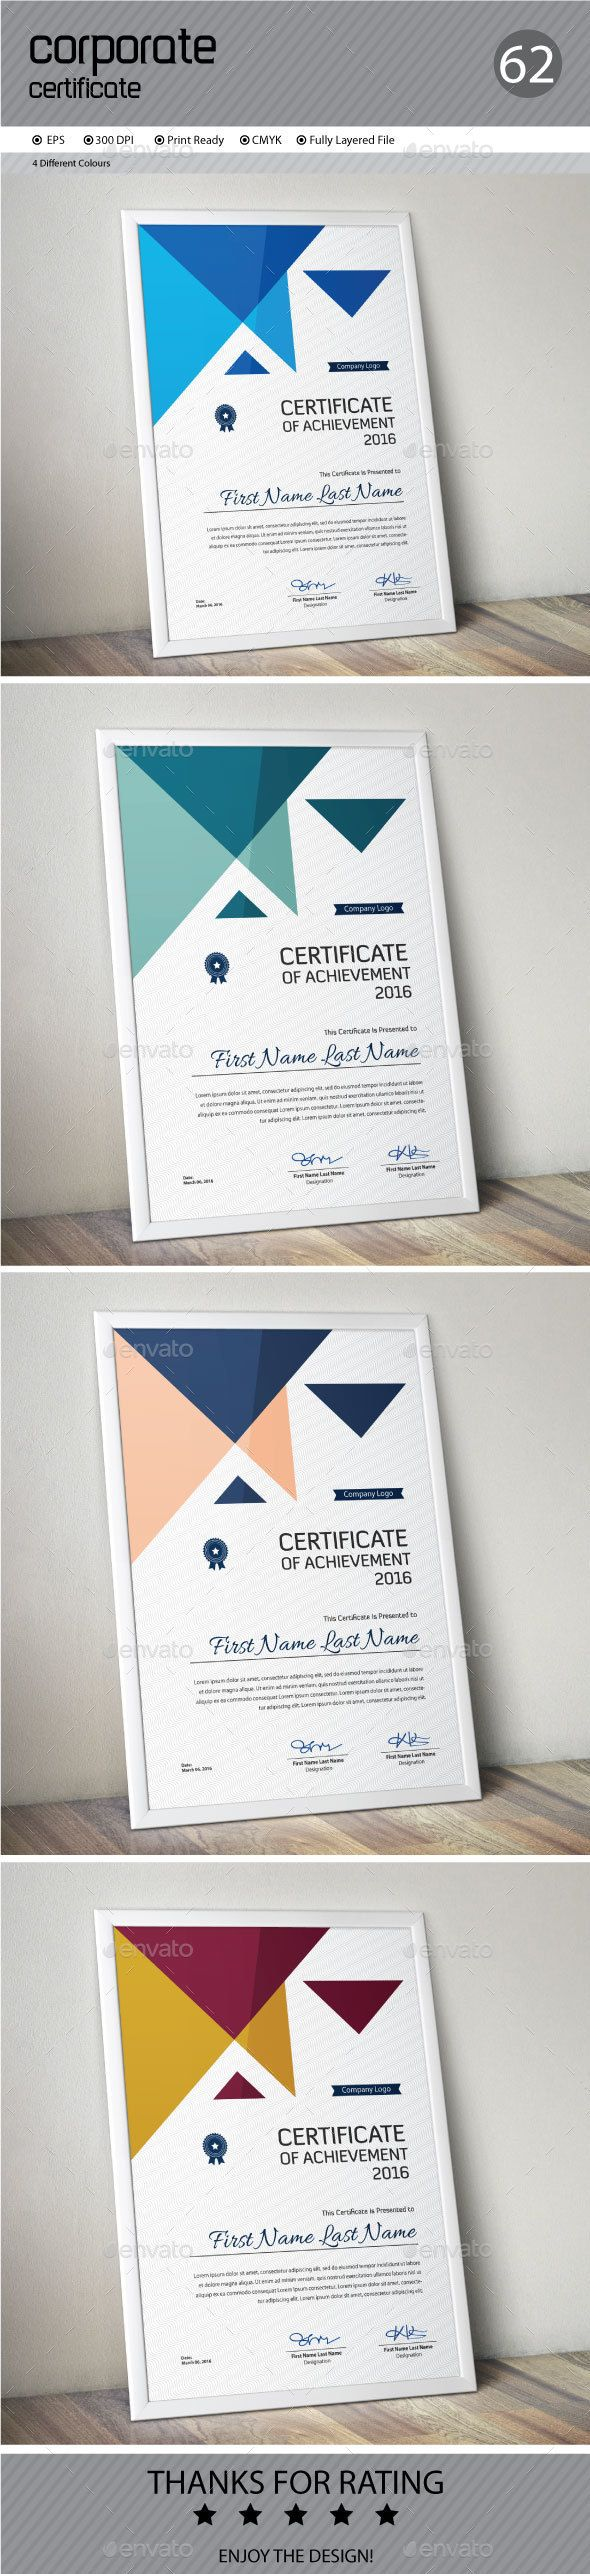 Certificate Template Vector EPS. Download here: http://graphicriver.net/item/certificate/15223920?ref=ksioks